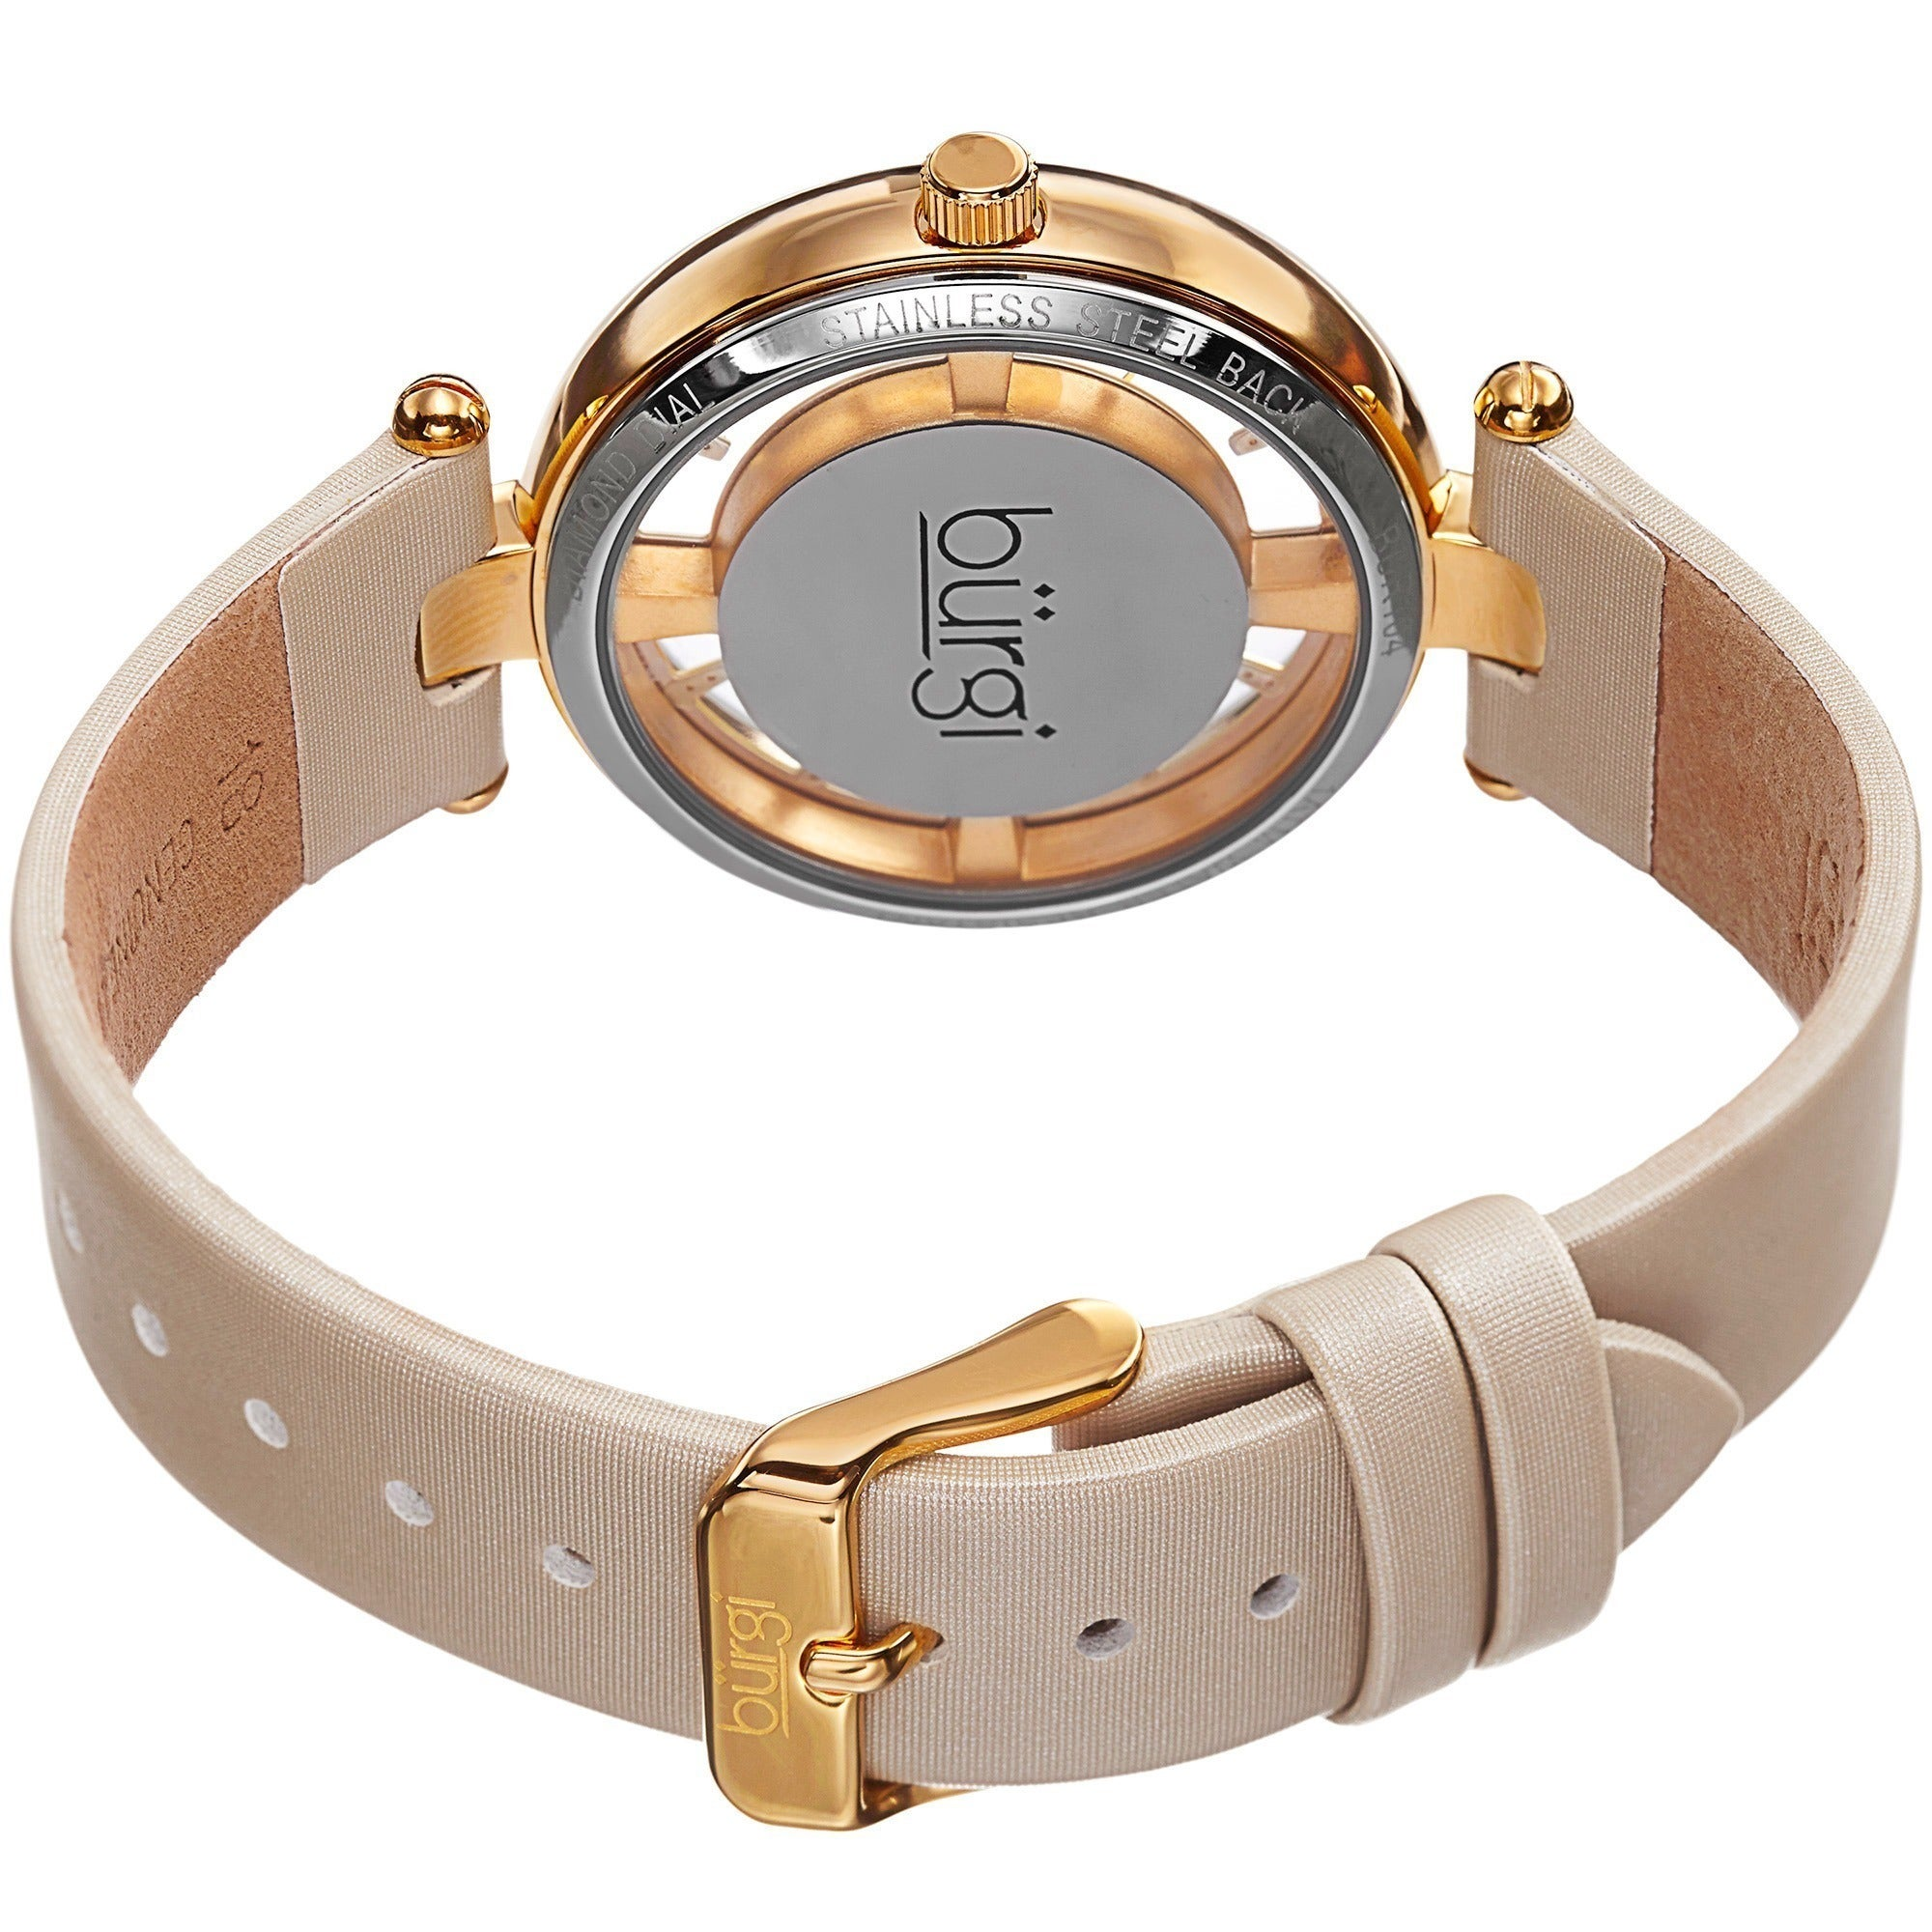 f4ff4e4c0c3 Shop Burgi Women s Diamond Accent Dial Satin Finish Strap Watch - cream  bracelet - On Sale - Free Shipping Today - Overstock - 9082612